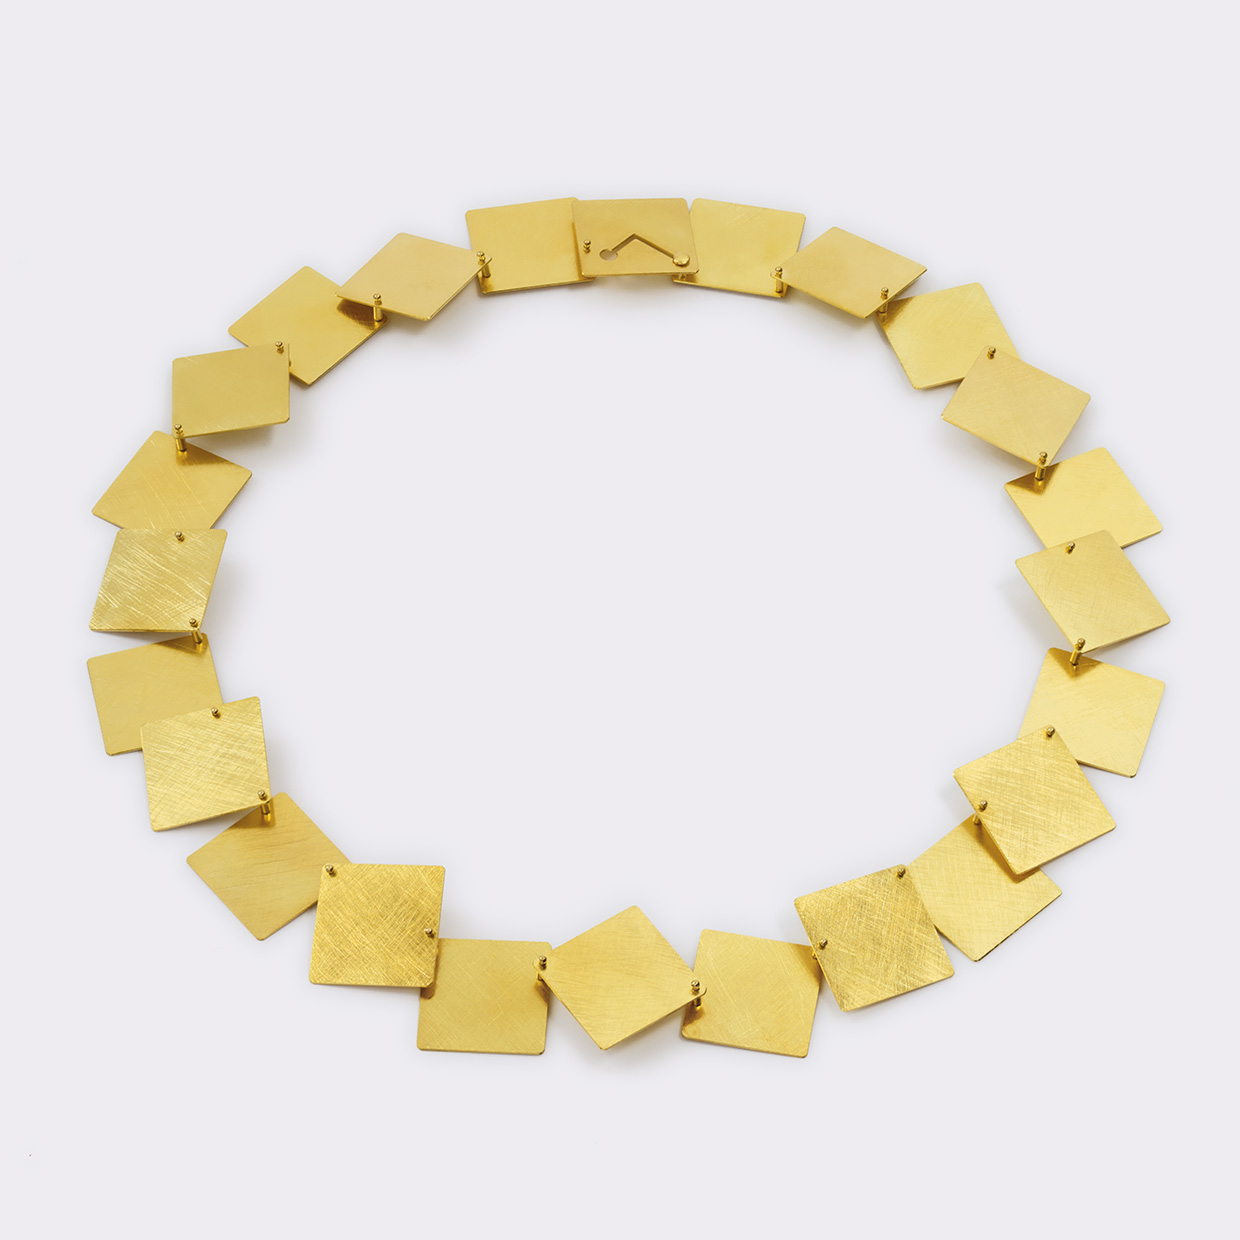 necklace  2011  gold  750  475x20  mm